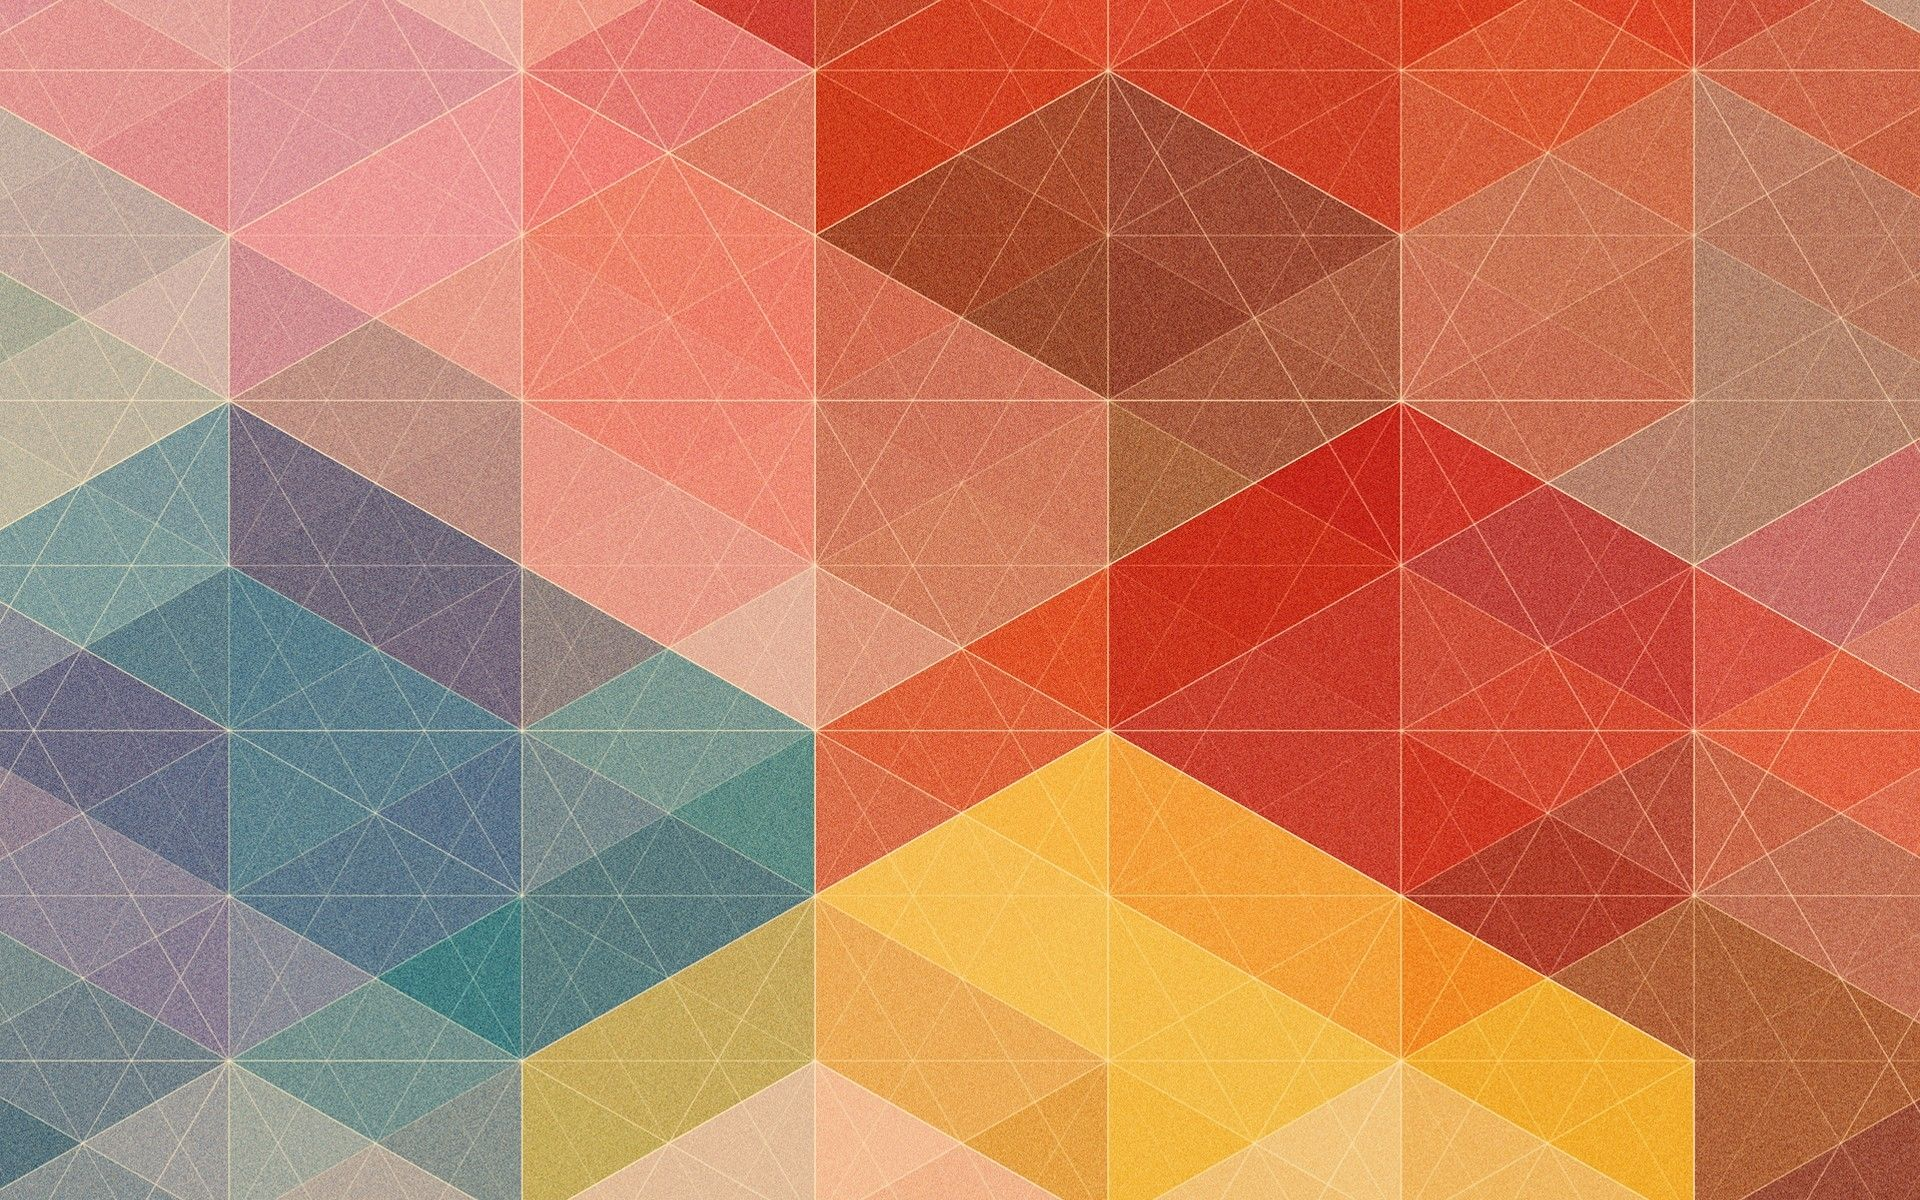 geometric shapes design wallpaper - google search | nightlight walls